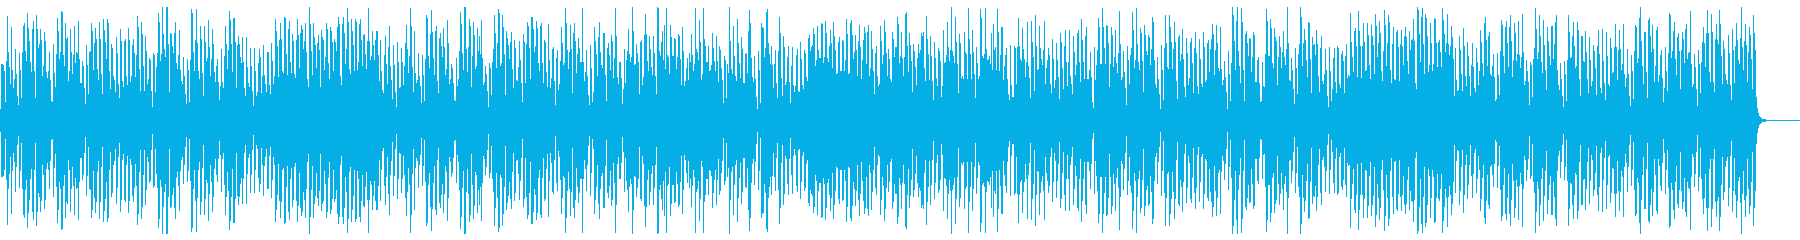 Light and cheerful violin gypsy jazz's reproduced waveform